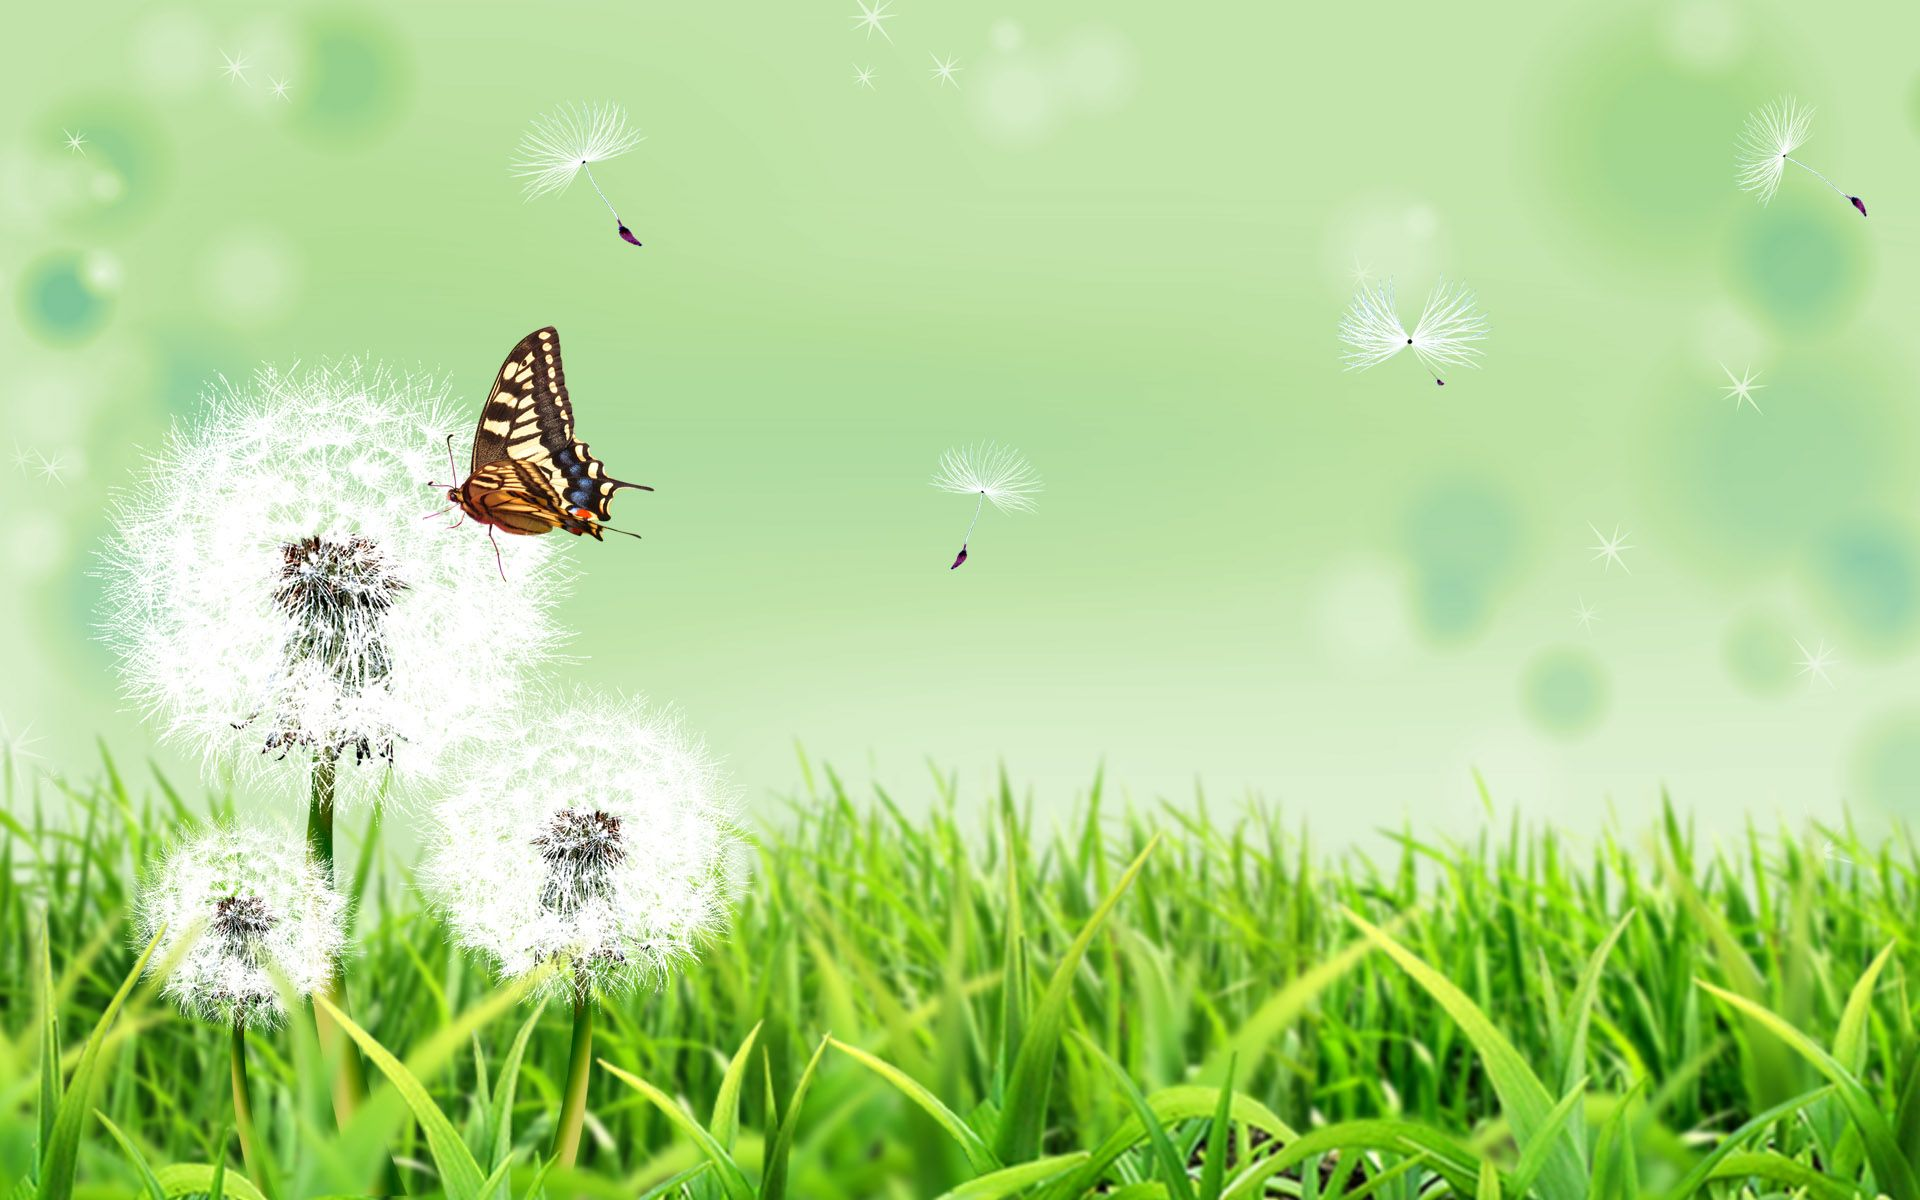 Free Scenery Wallpaper Includes Dandelion And Butterfly Doing